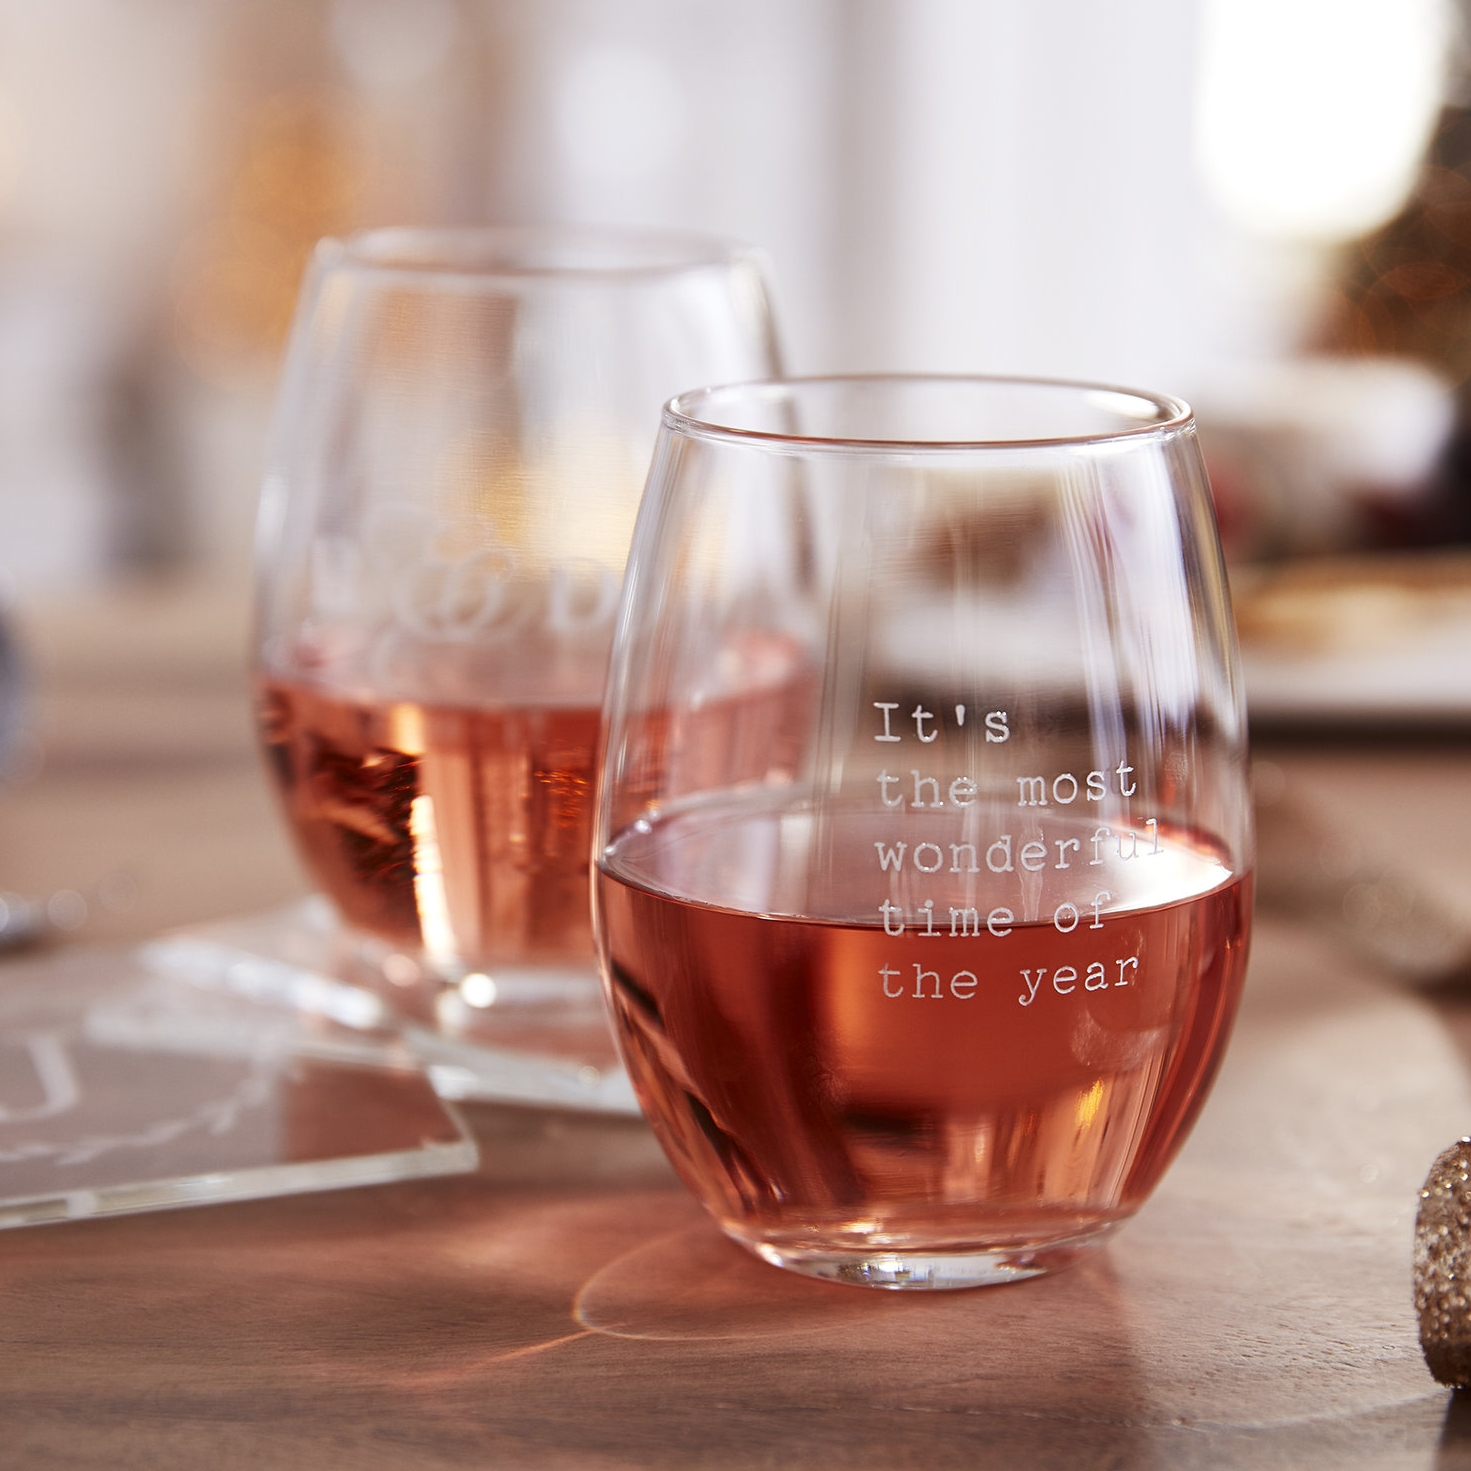 17_Q4_sfly_life_holiday_extra_page26_decantur_chamglass_winetote_03.jpg